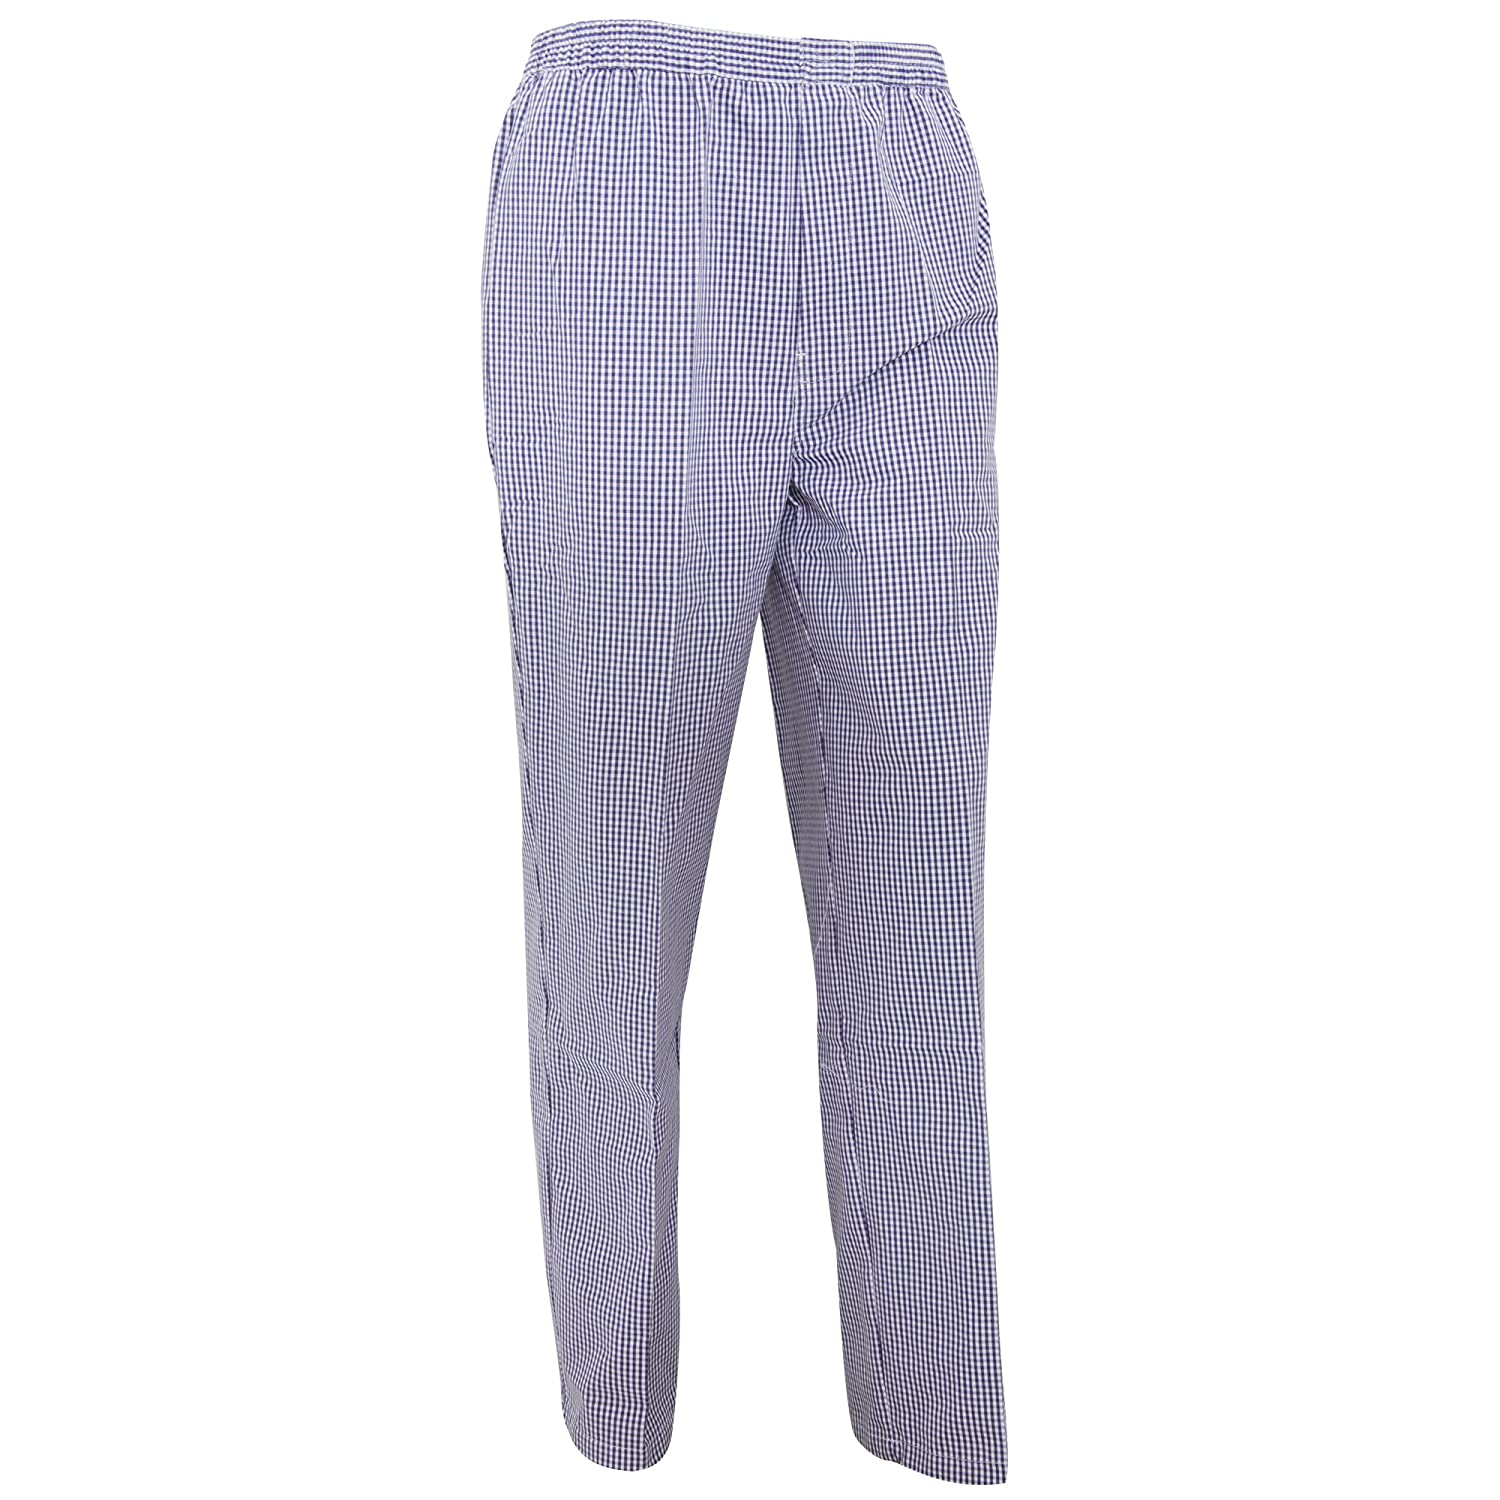 Premier Unisex Pull-on Chefs Trousers/Catering Workwear